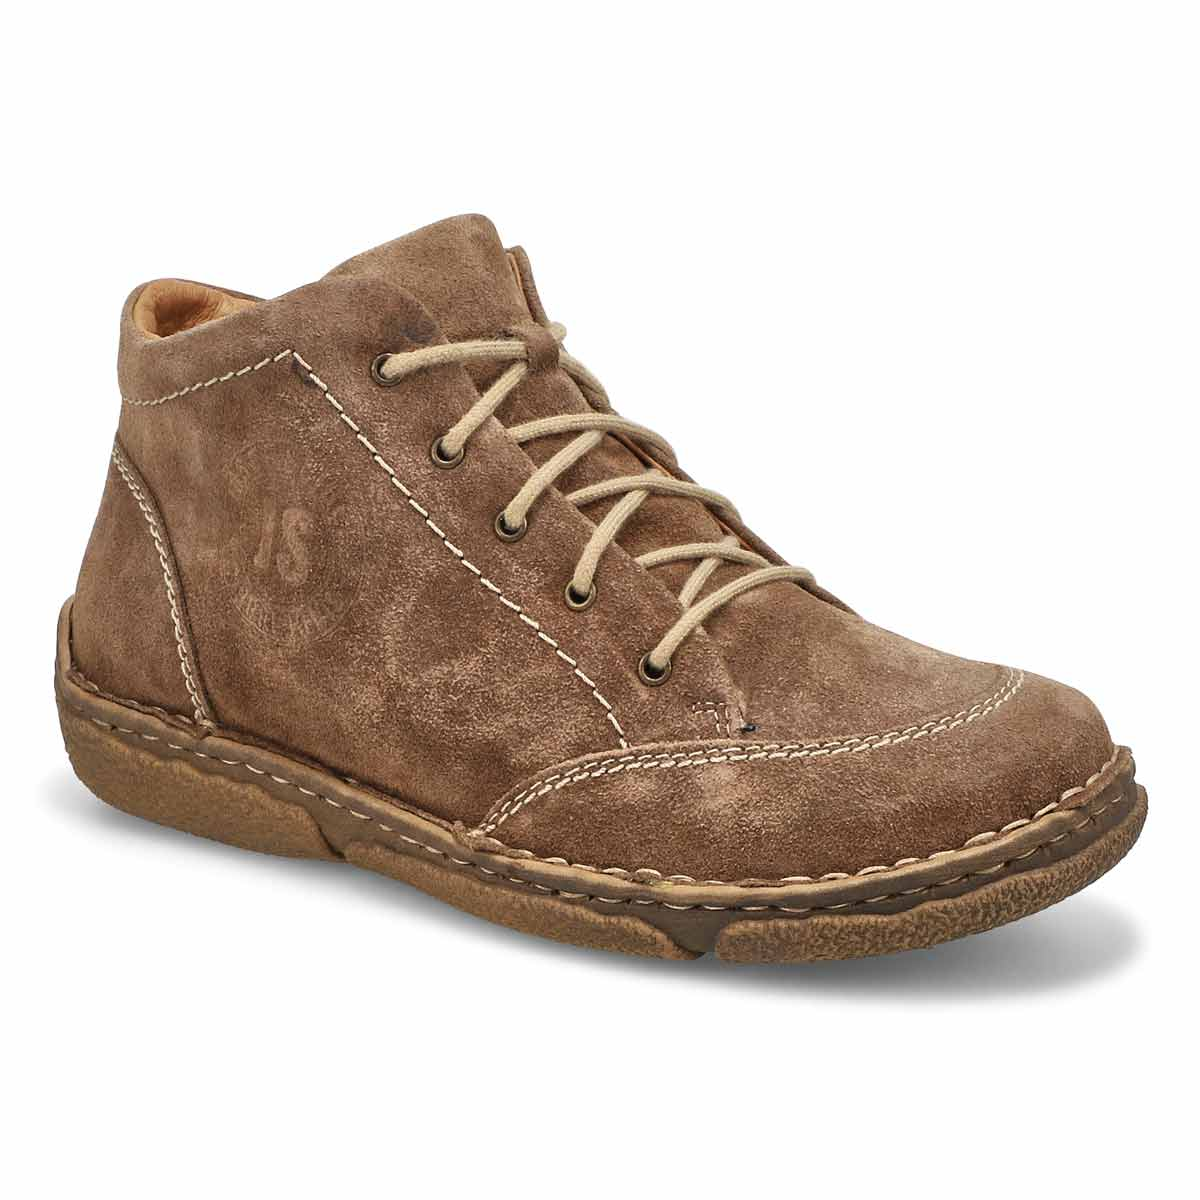 Women's Neele 01 Casual Ankle Boot - Taupe